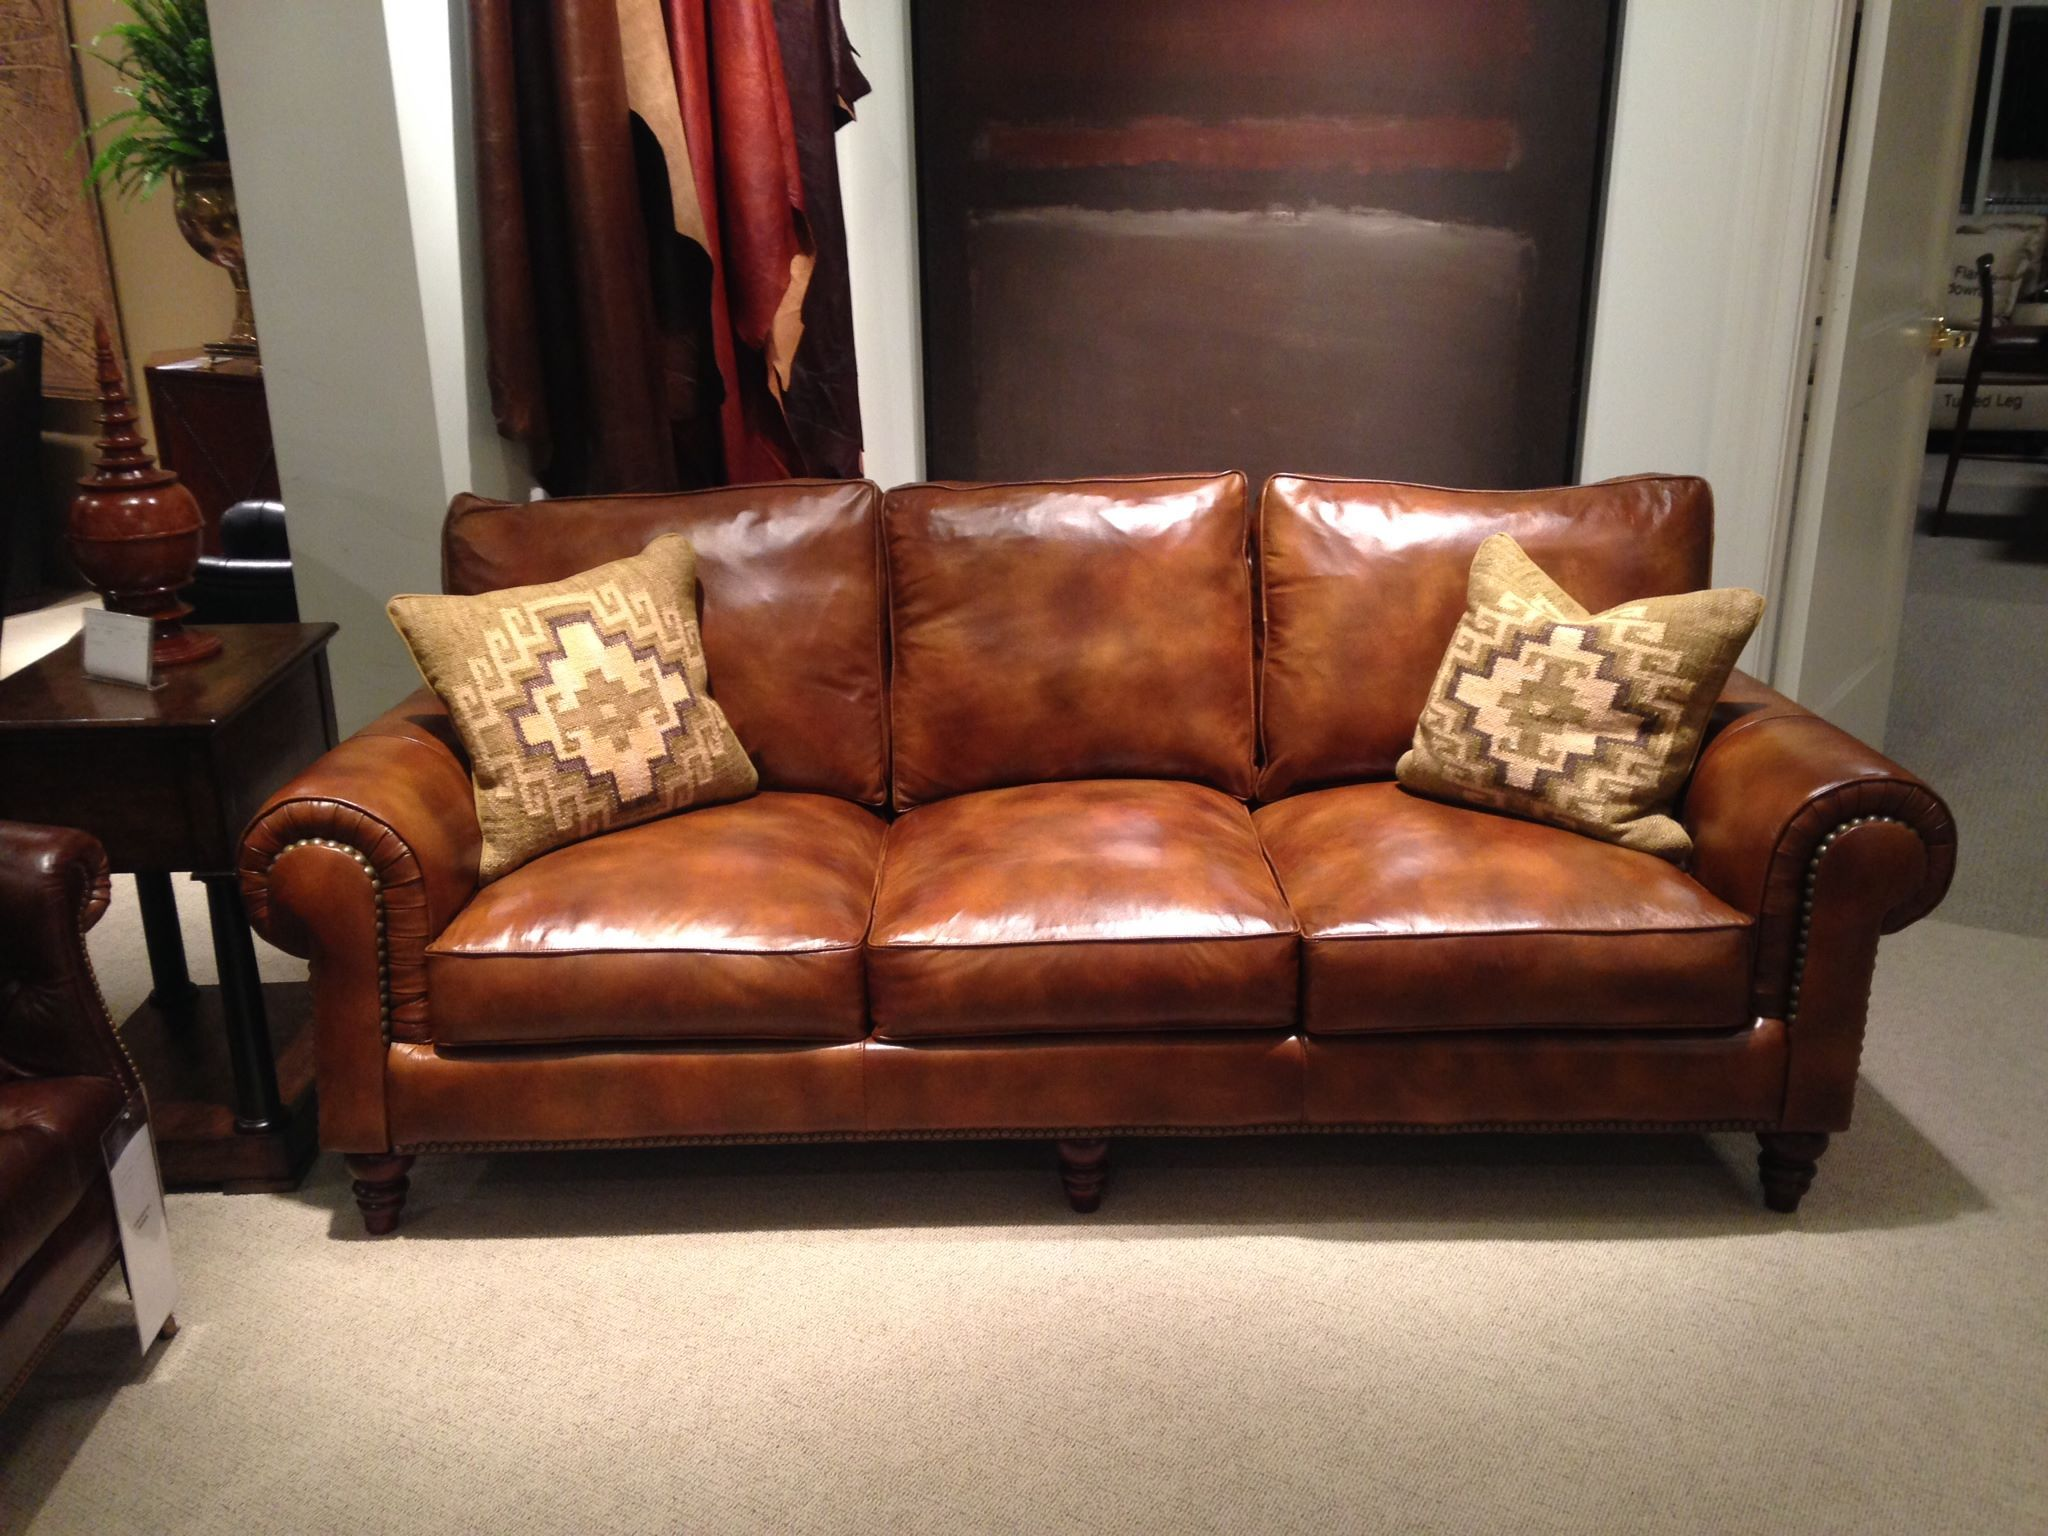 Superbe Henredon Leather Sofa In Mister Robert Furniture In Norman OK